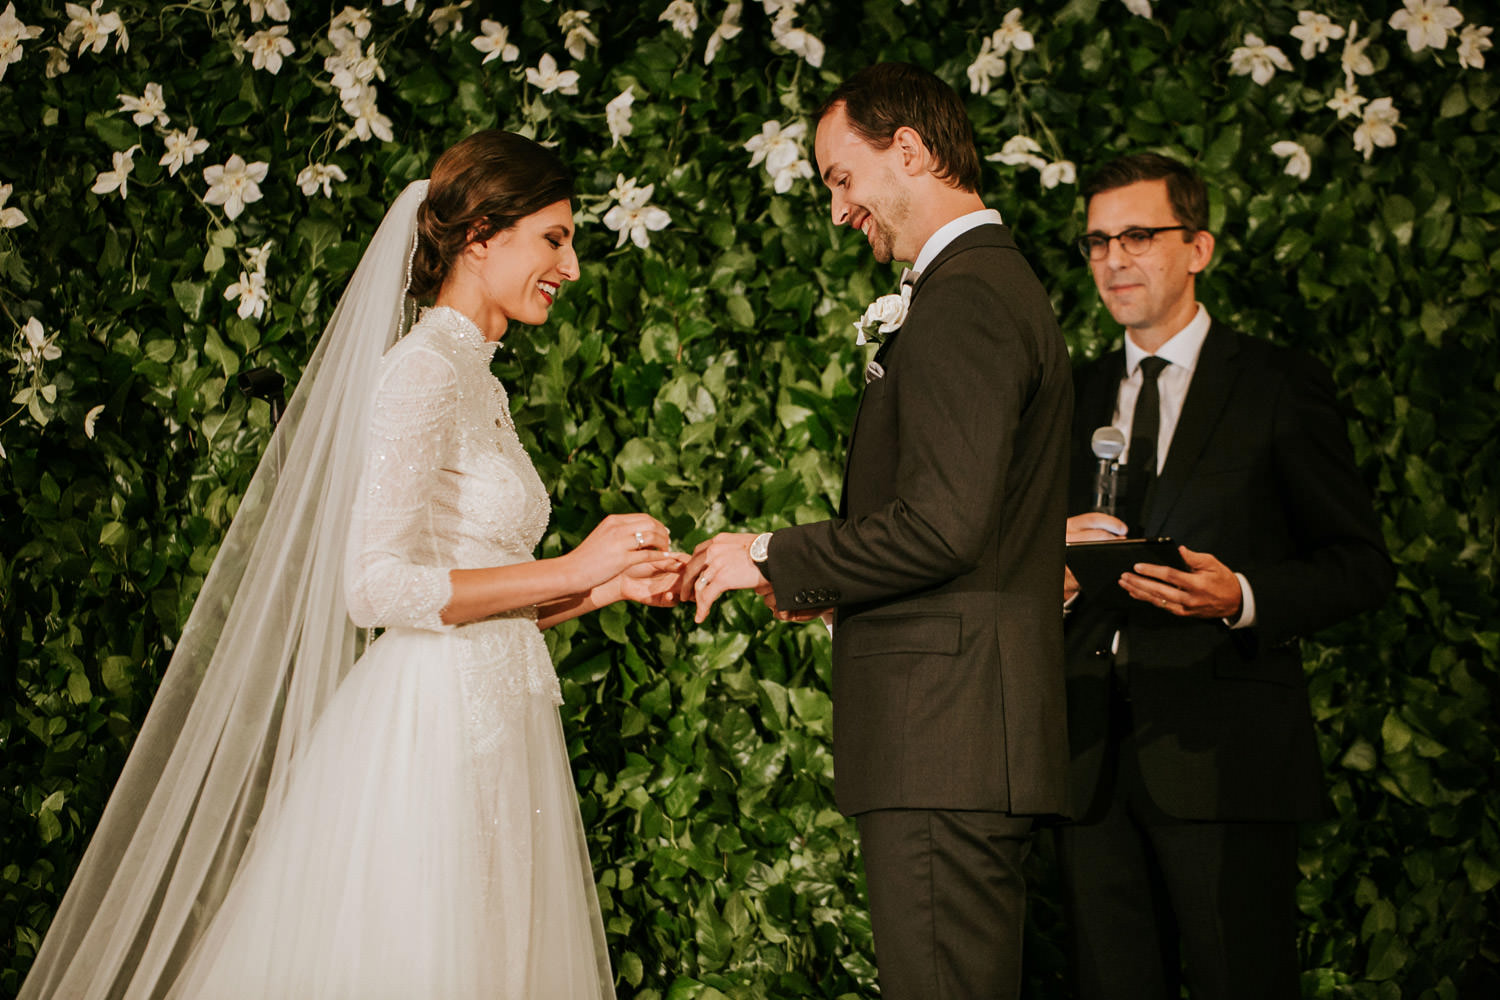 Bride and groom exchange wedding rings during the wedding ceremony in hotel gray chicago